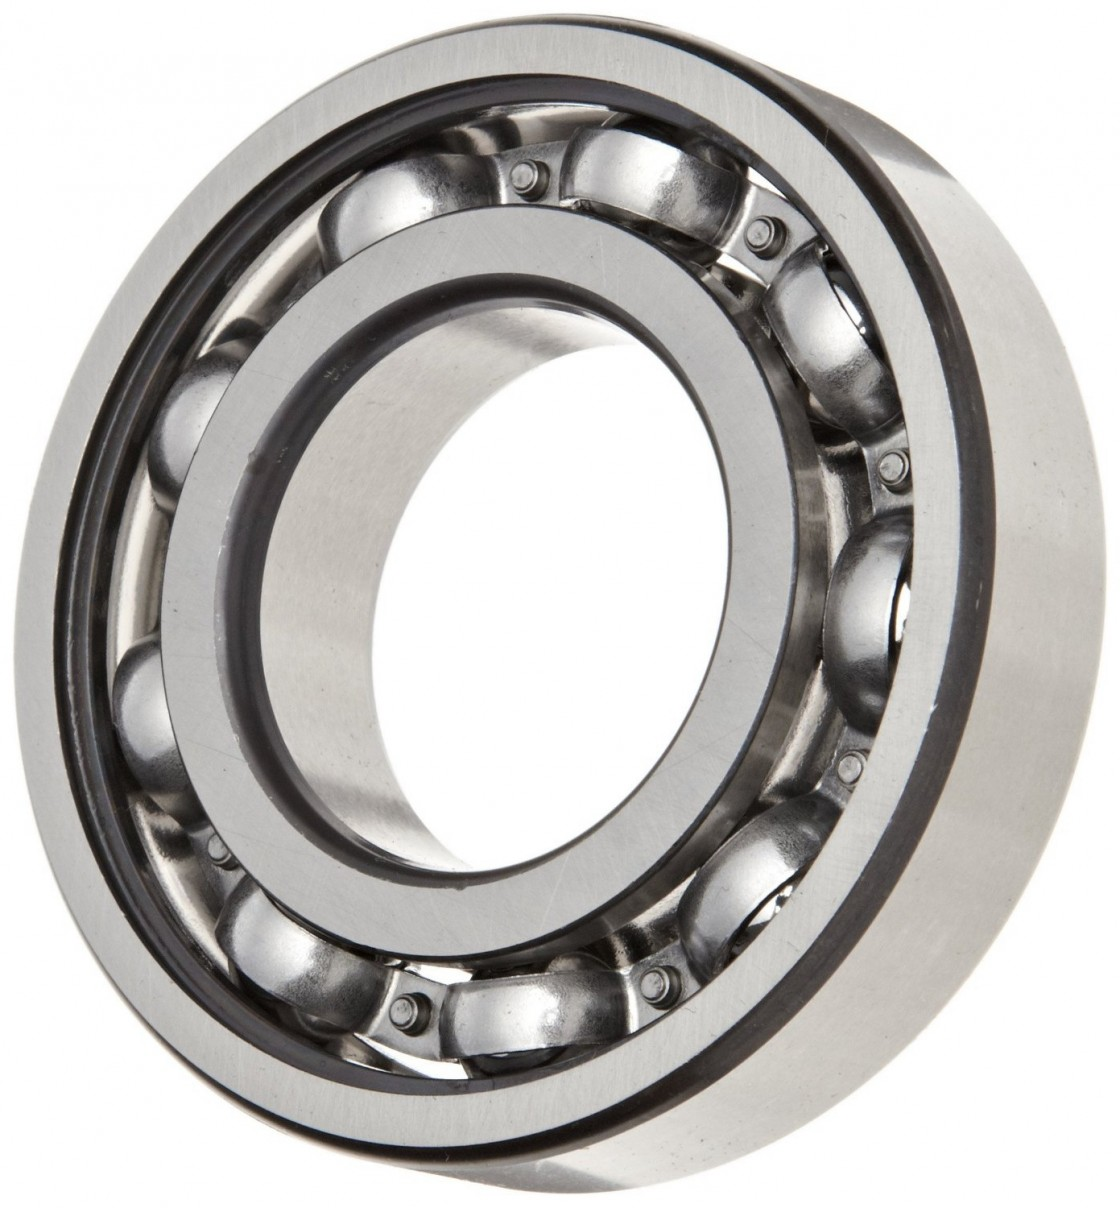 ORIGINAL FAG MADE IN GERMANY DEEP GROOVE BALL BEARING 6038 6040 6044 6048 6052 6056 6060 6064 6068 6072